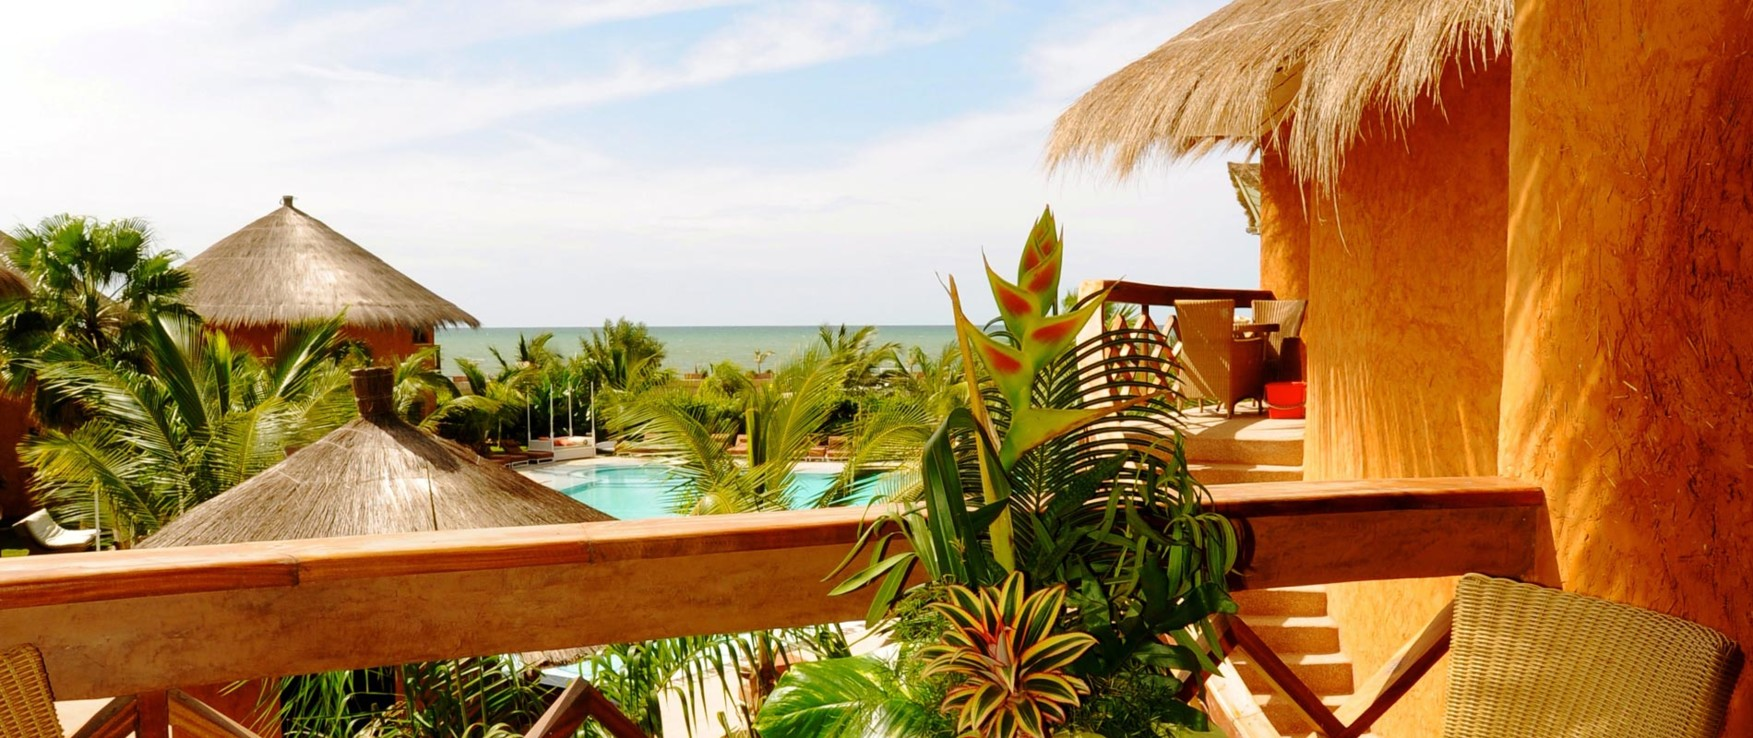 Lamantin Beach Resort Spa 5 Star Hotel In Saly With A View